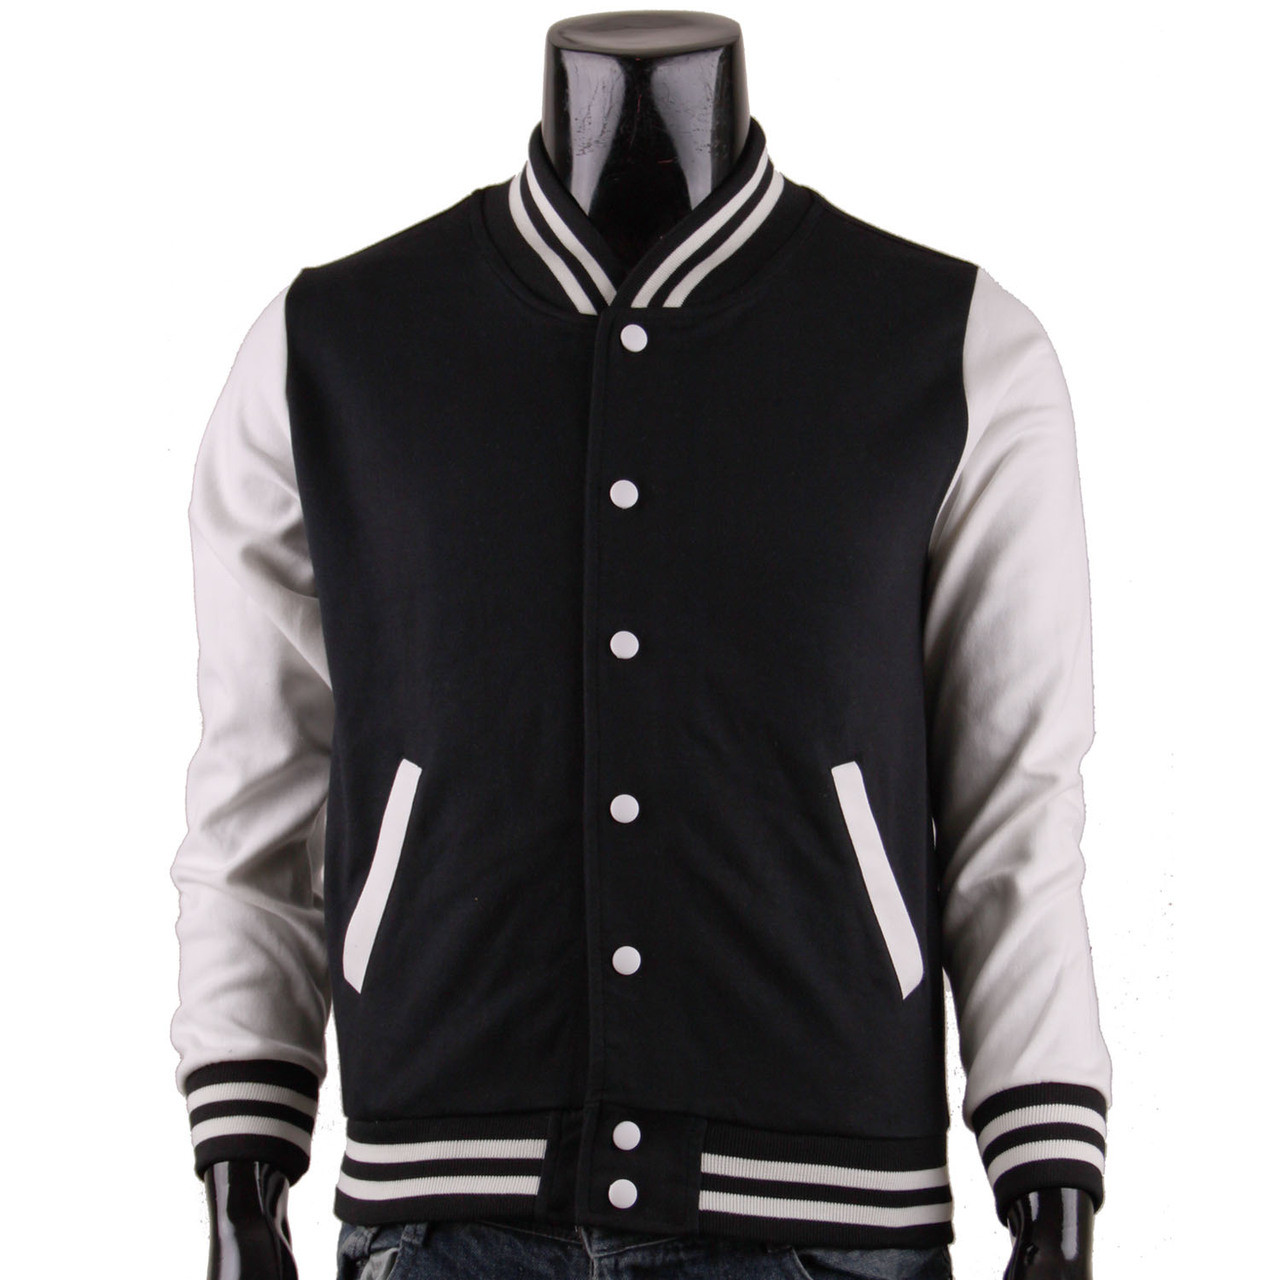 Find great deals on eBay for NY Baseball Jacket in Men's Coats And Jackets. Shop with confidence.